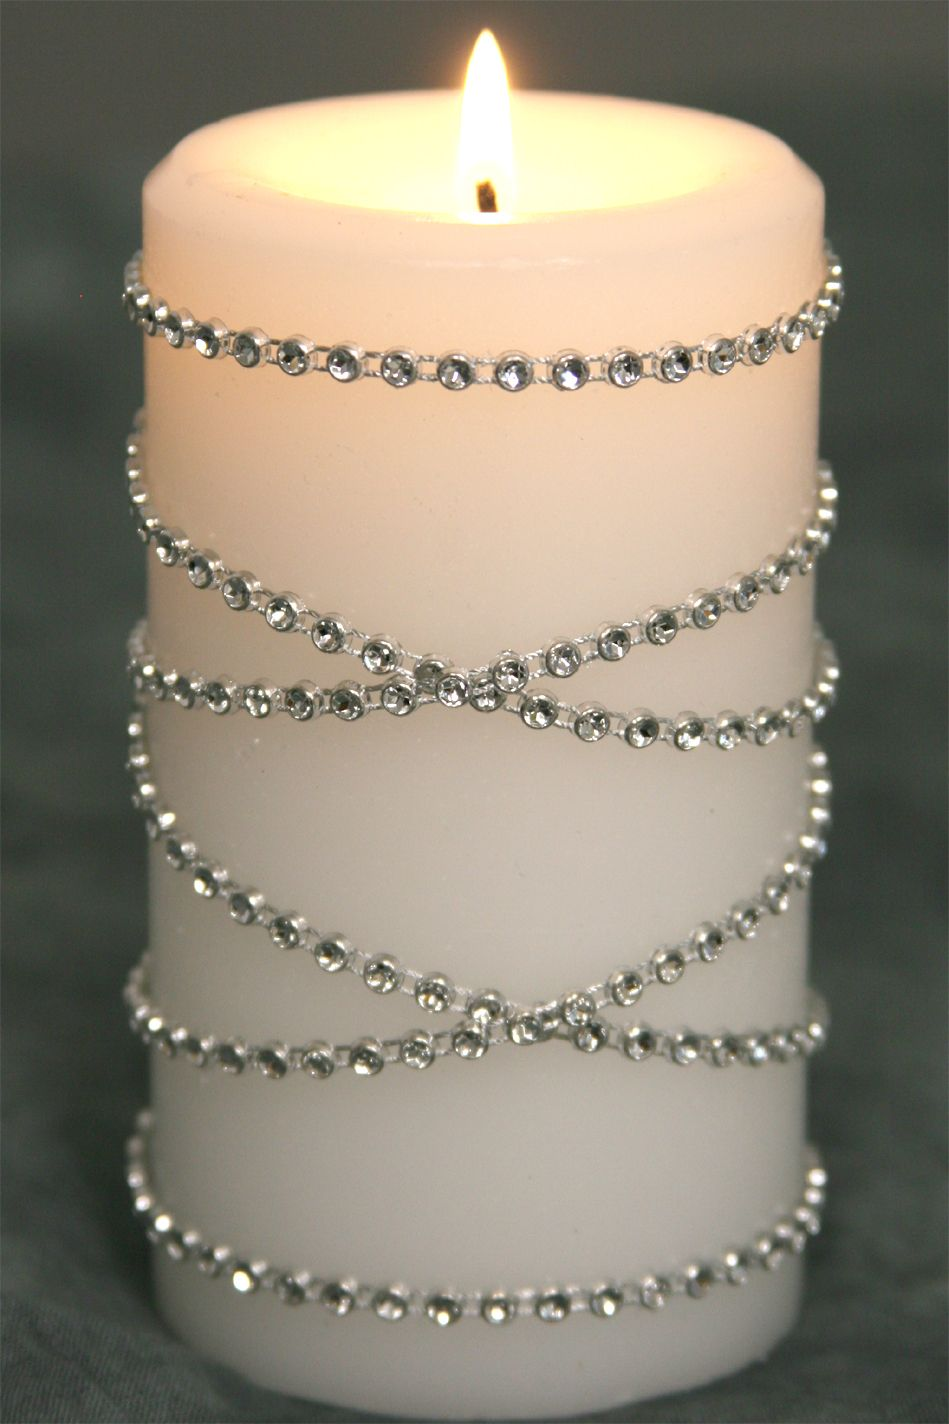 Diamond Wrap Rolls Silver Single Row 60 Ft Long 1 8 Quot Beads Trimmable Wedding Ideas